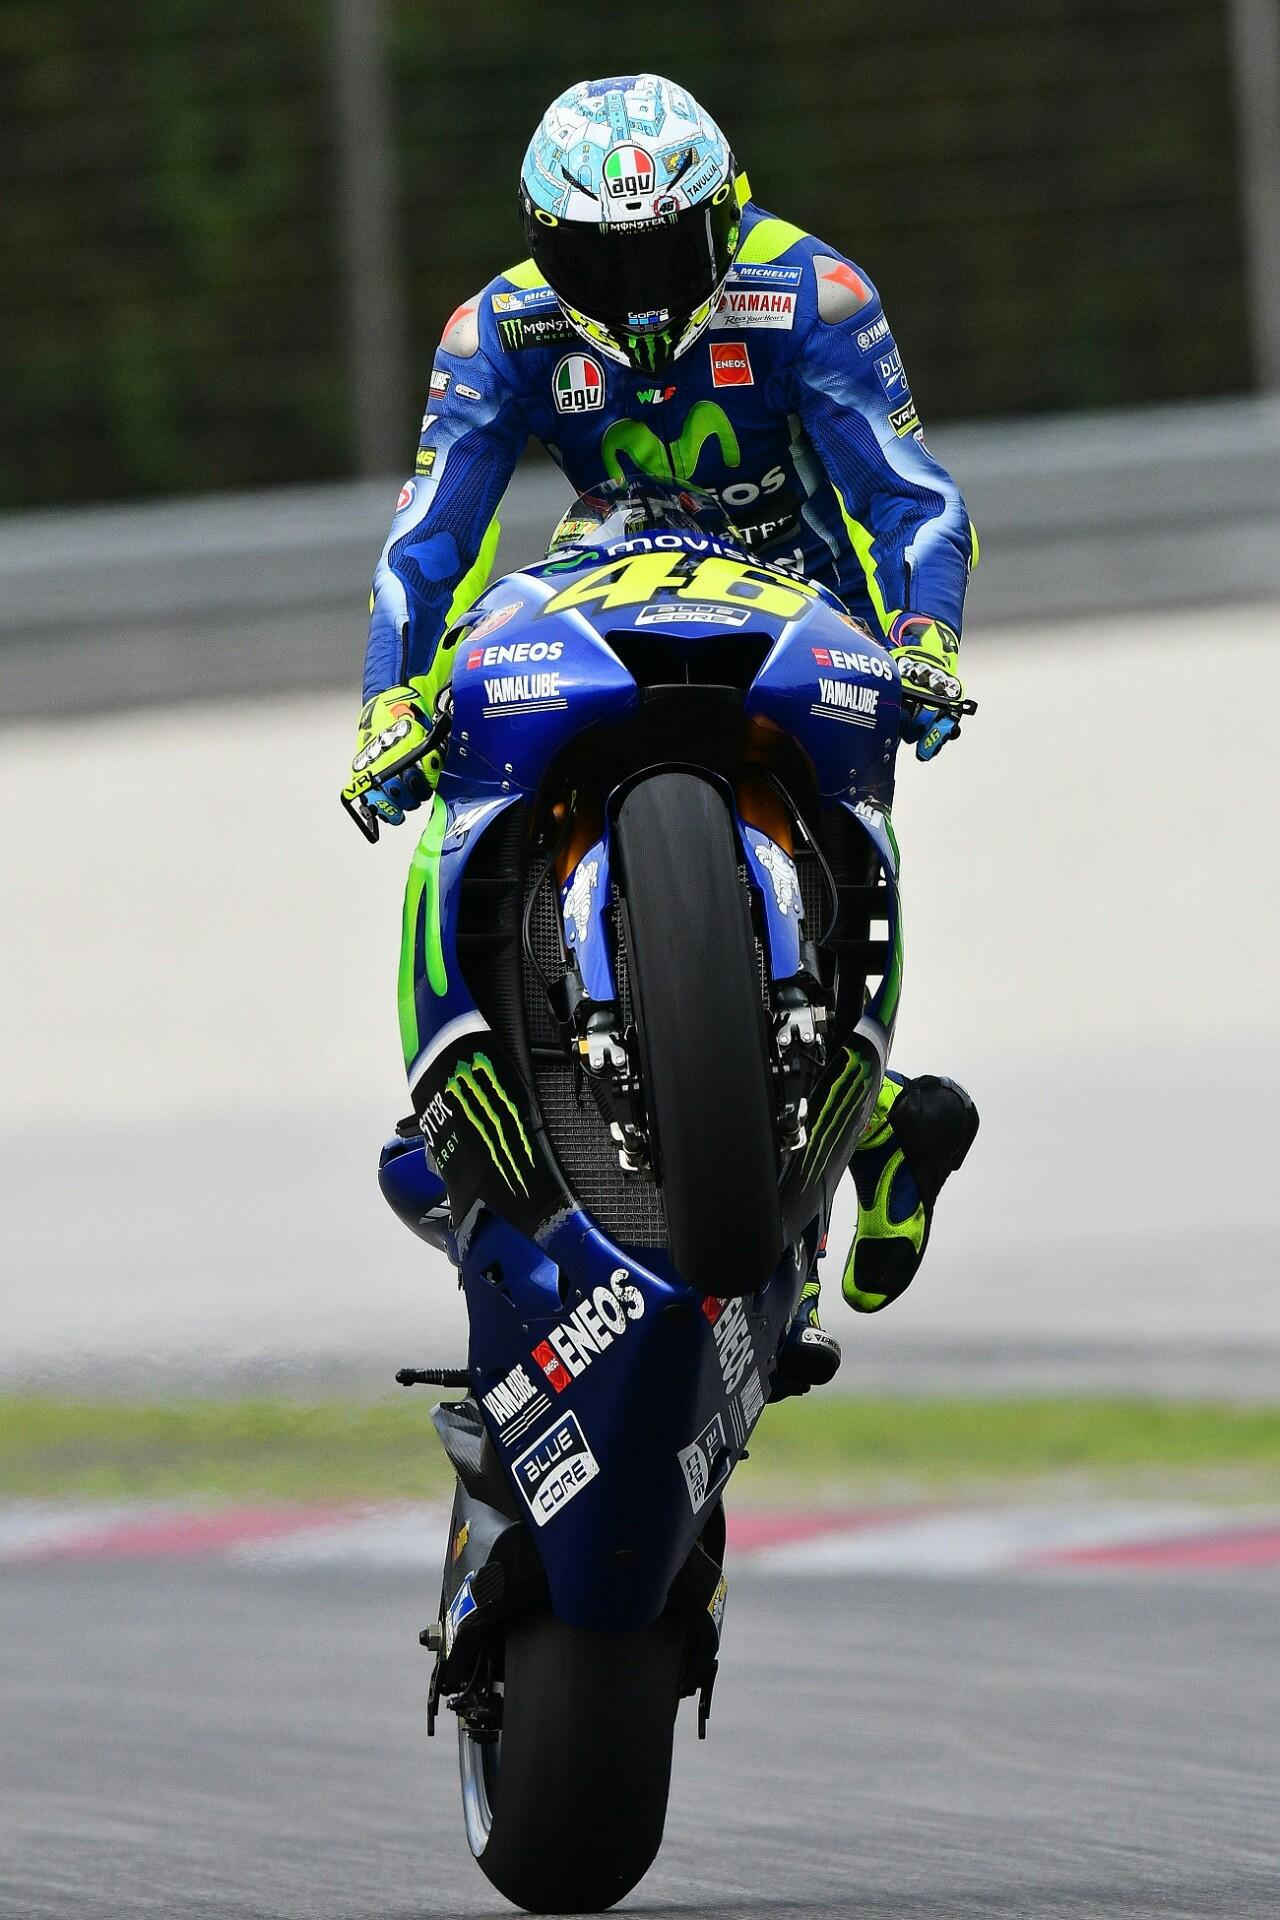 Free download 0 Wallpapers Valentino Rossi Wallpapers